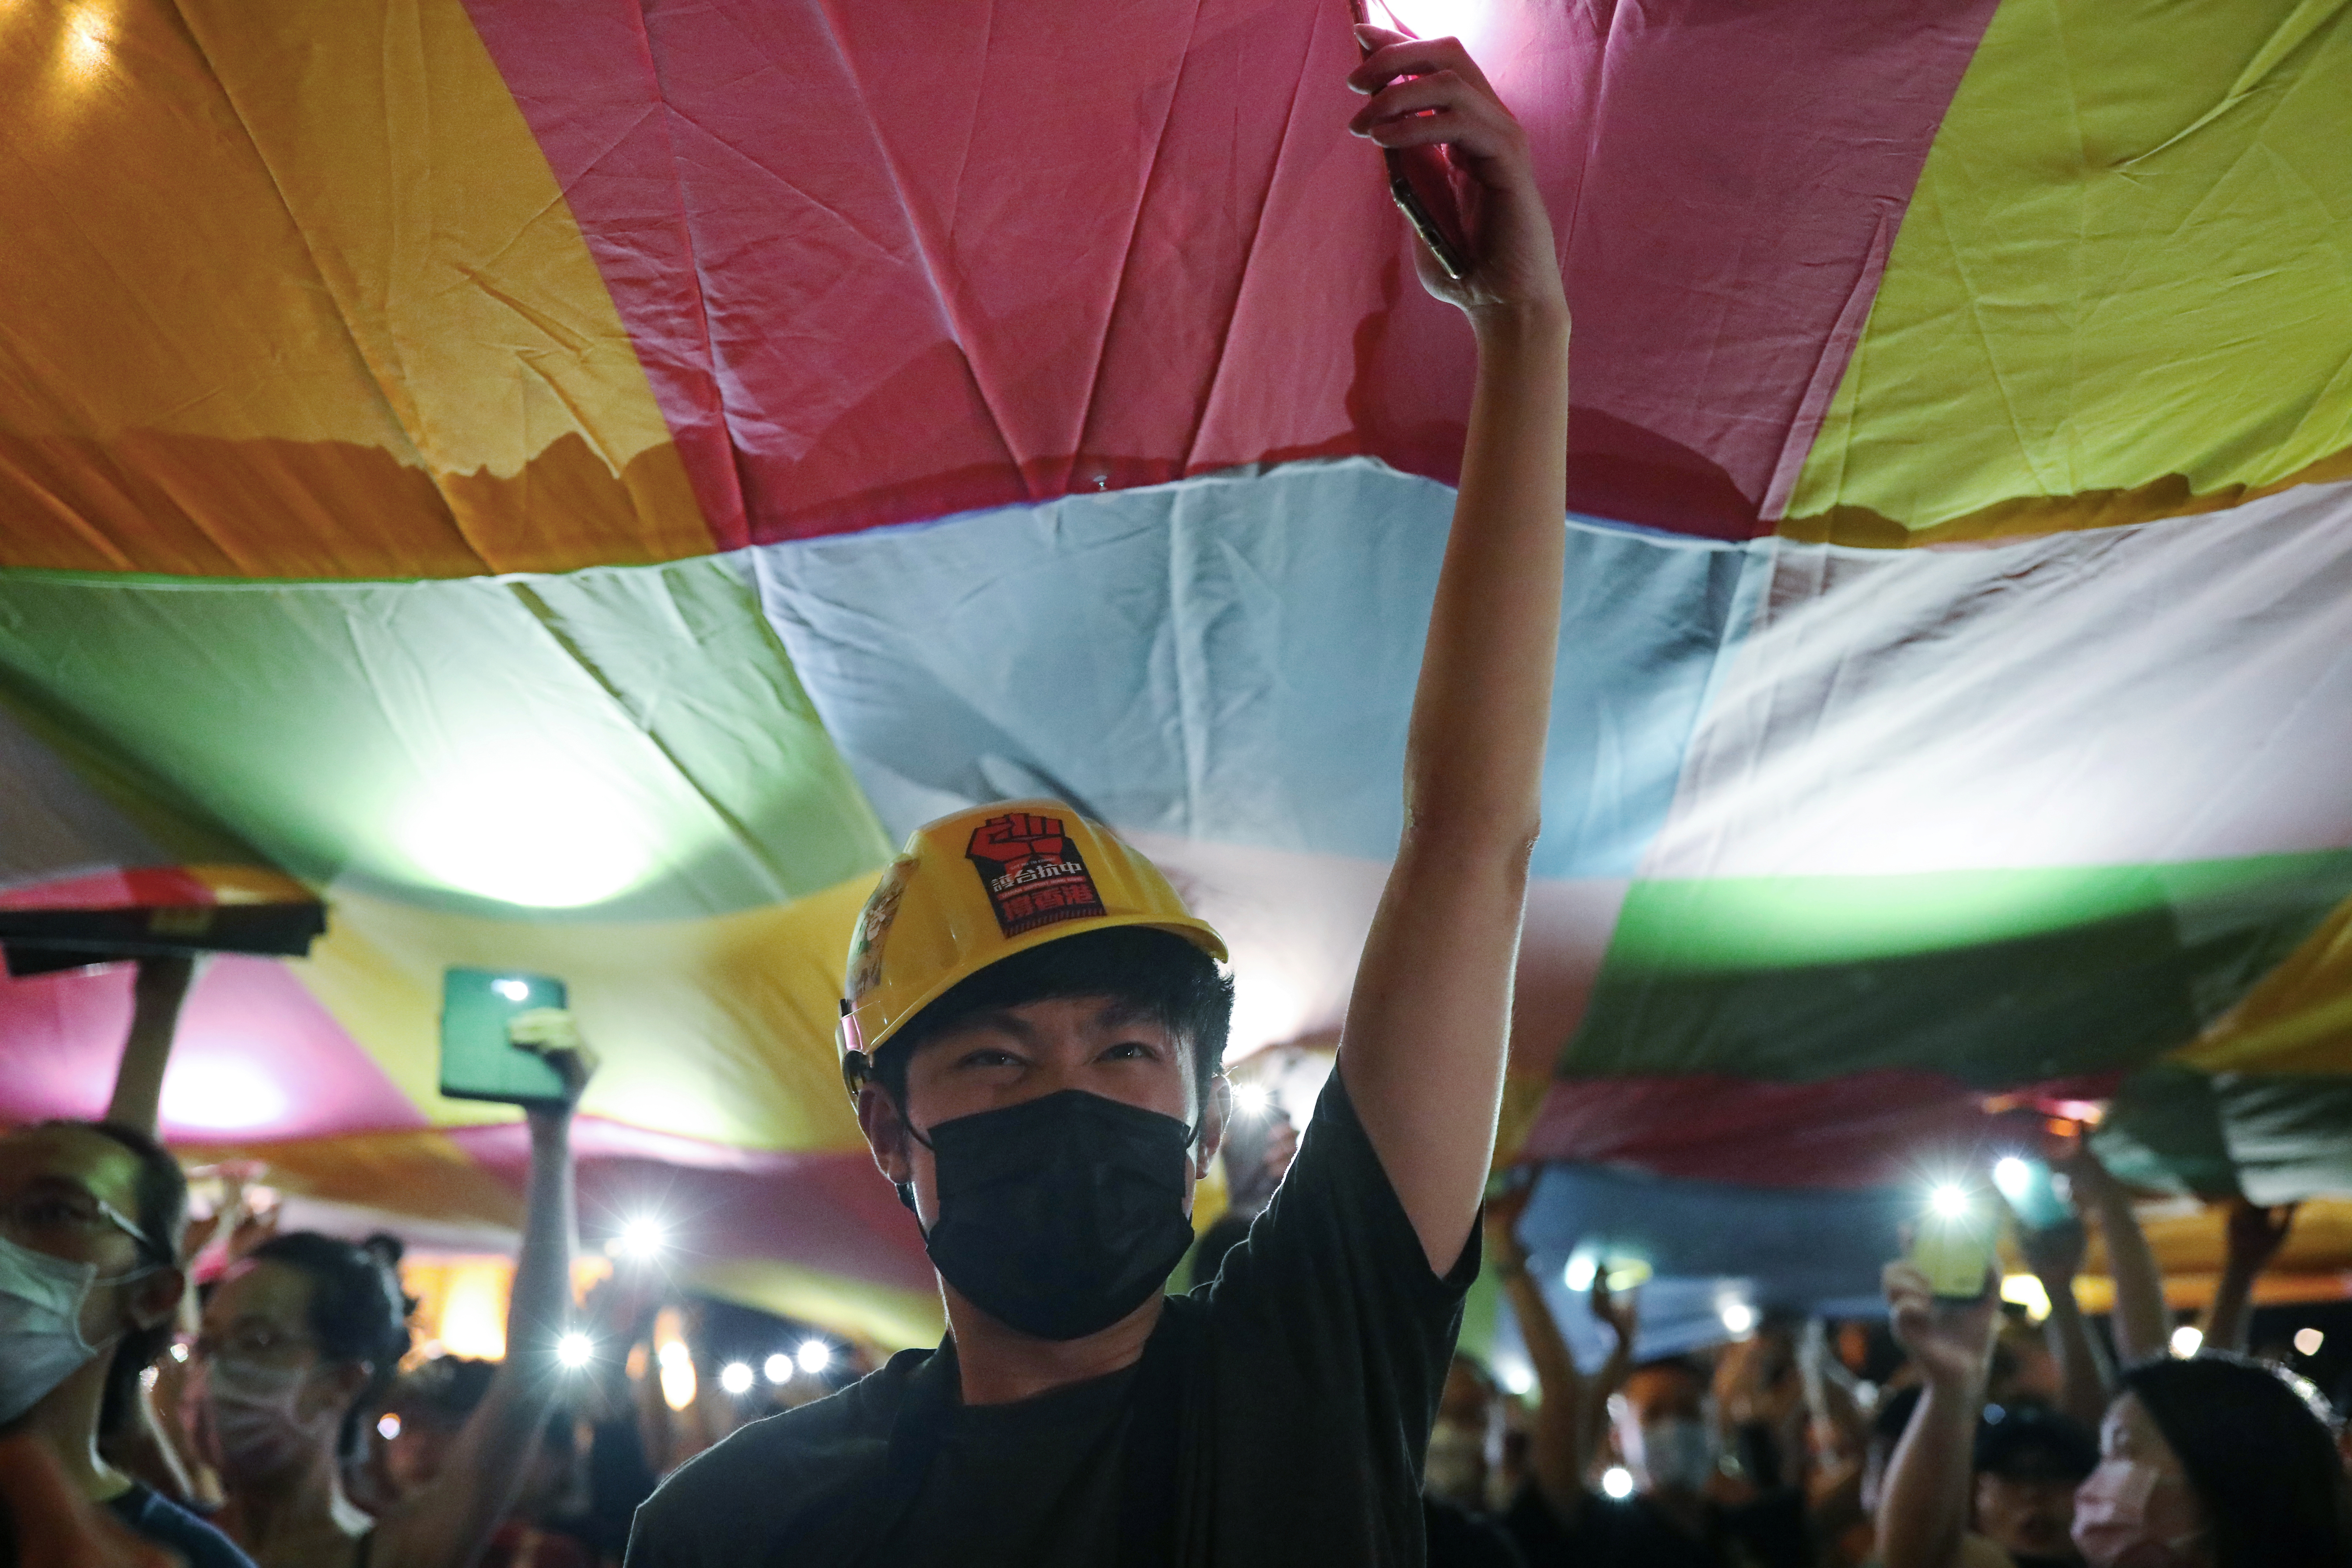 The global pushback against China's overreach in Hong Kong